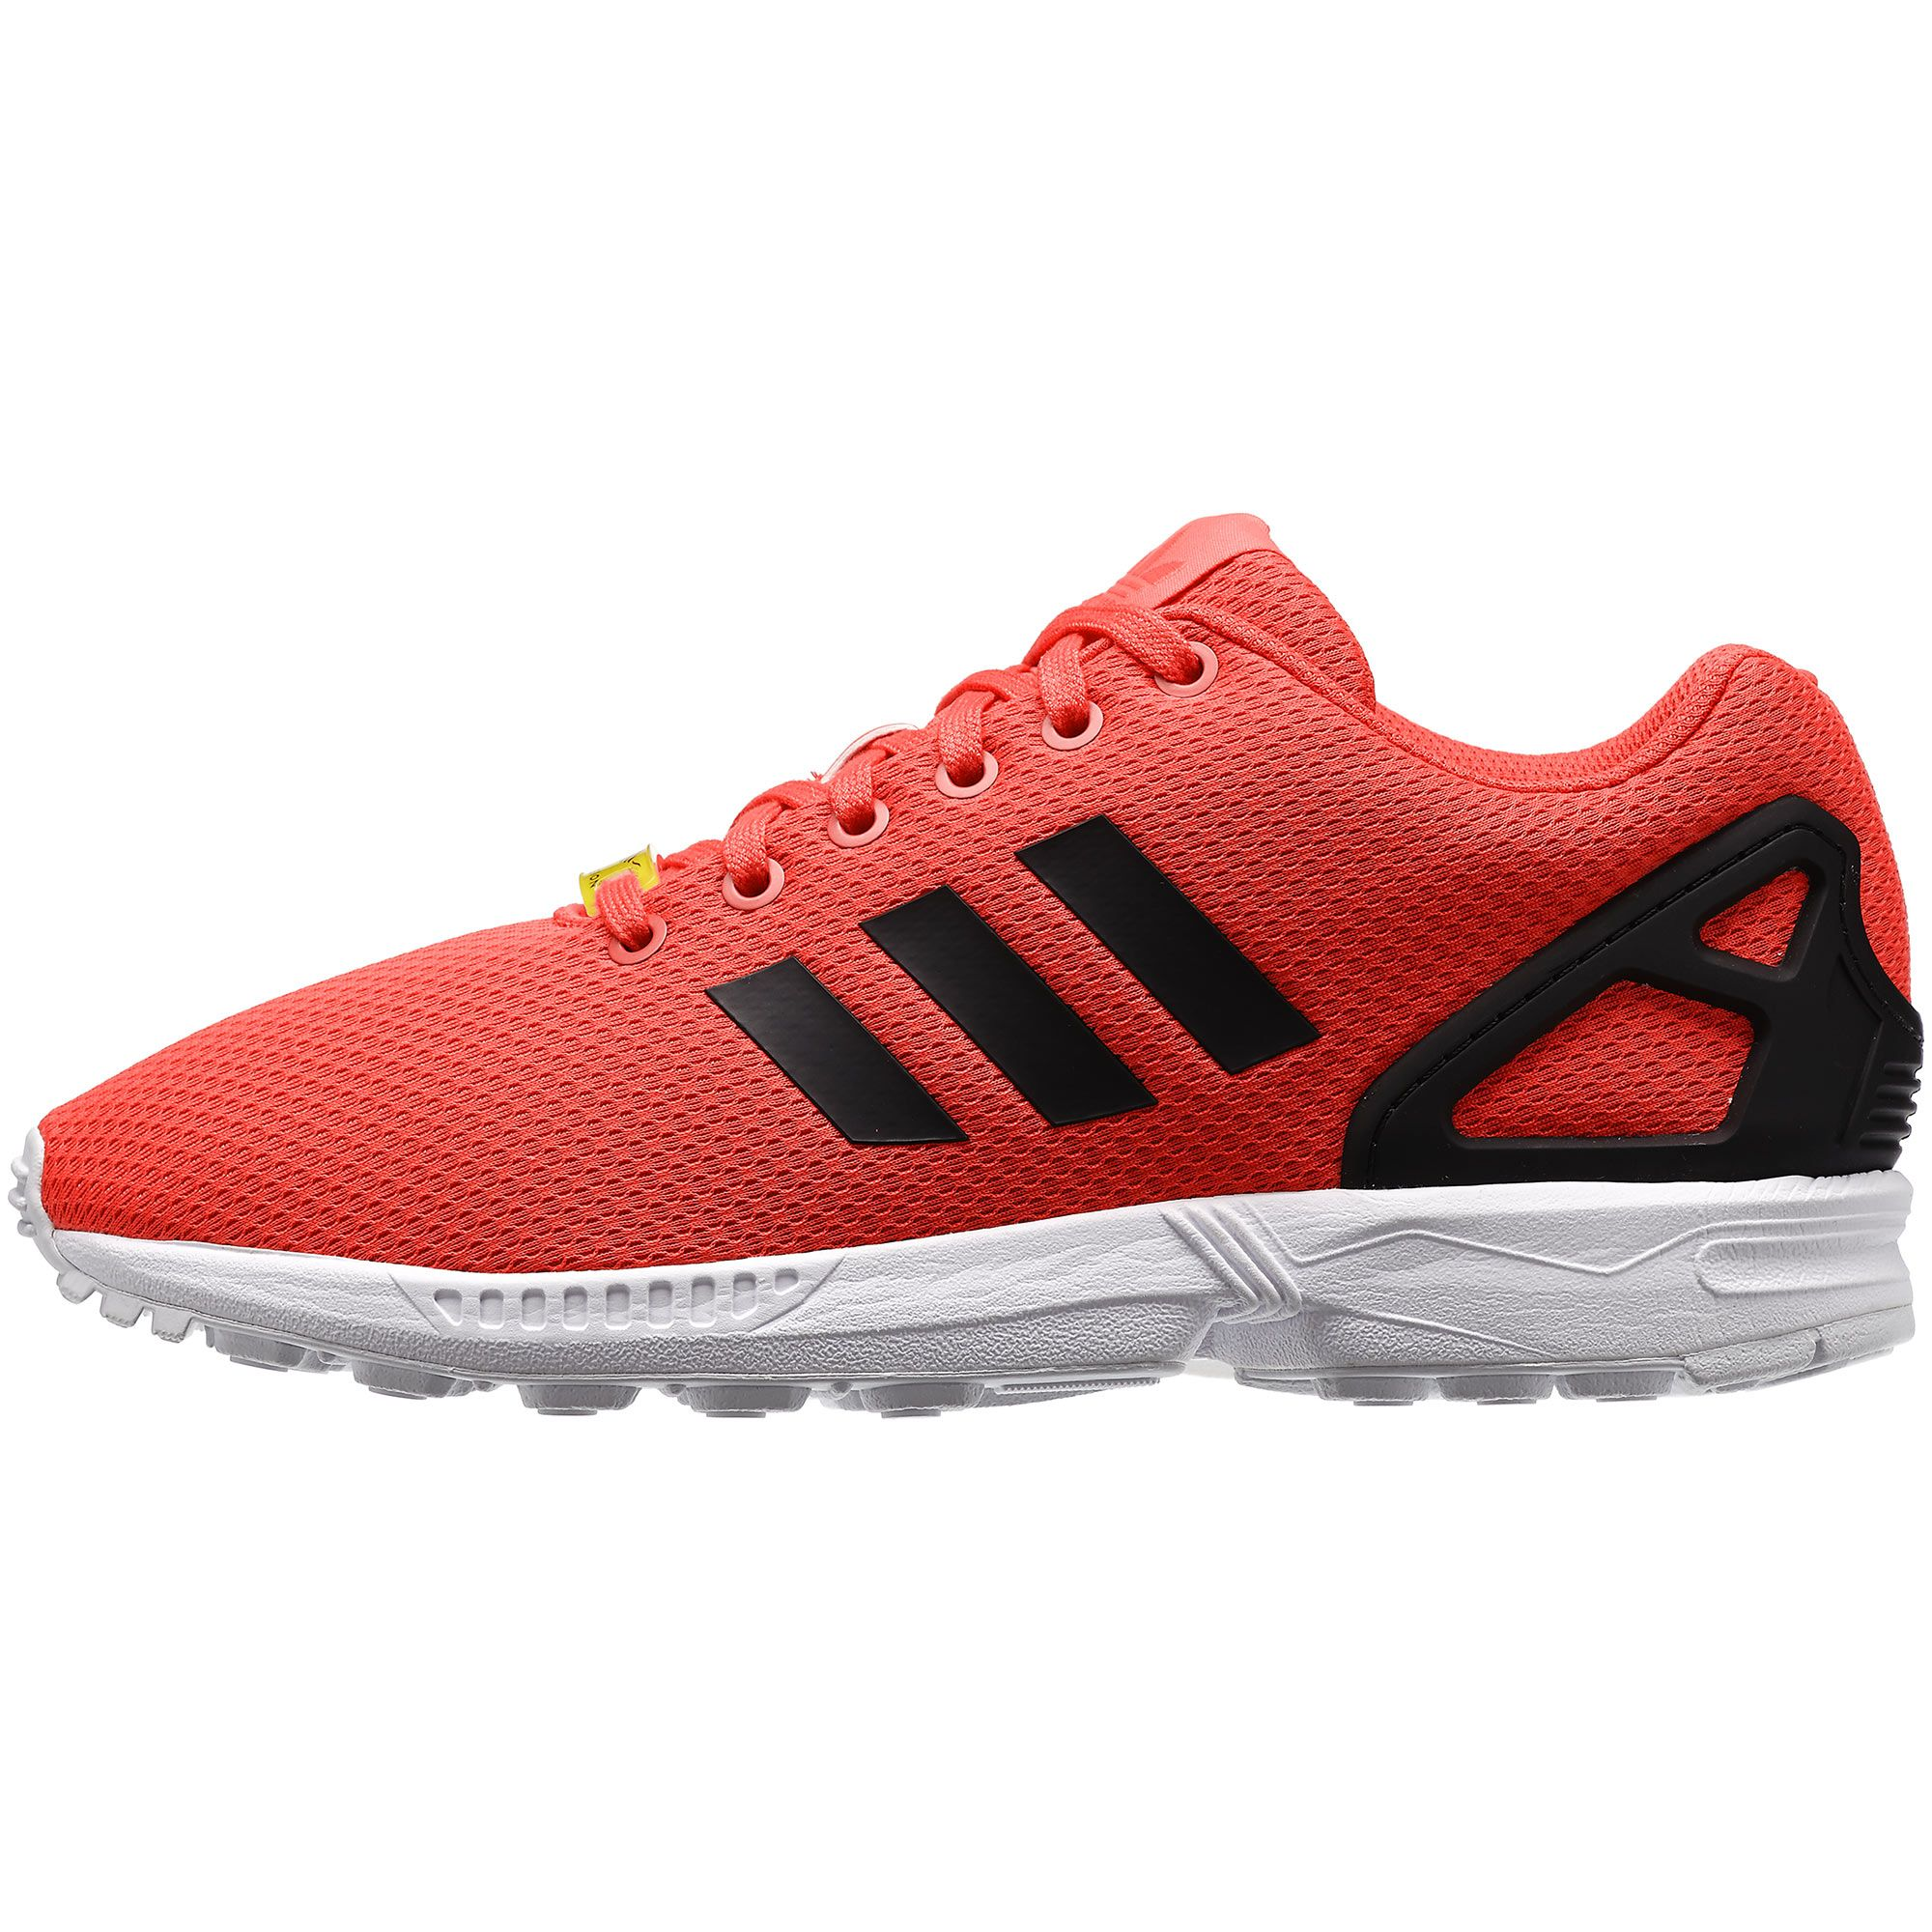 a77034dcf ... norway adidas zx flux shoes adidas uk 5dc89 da4ef